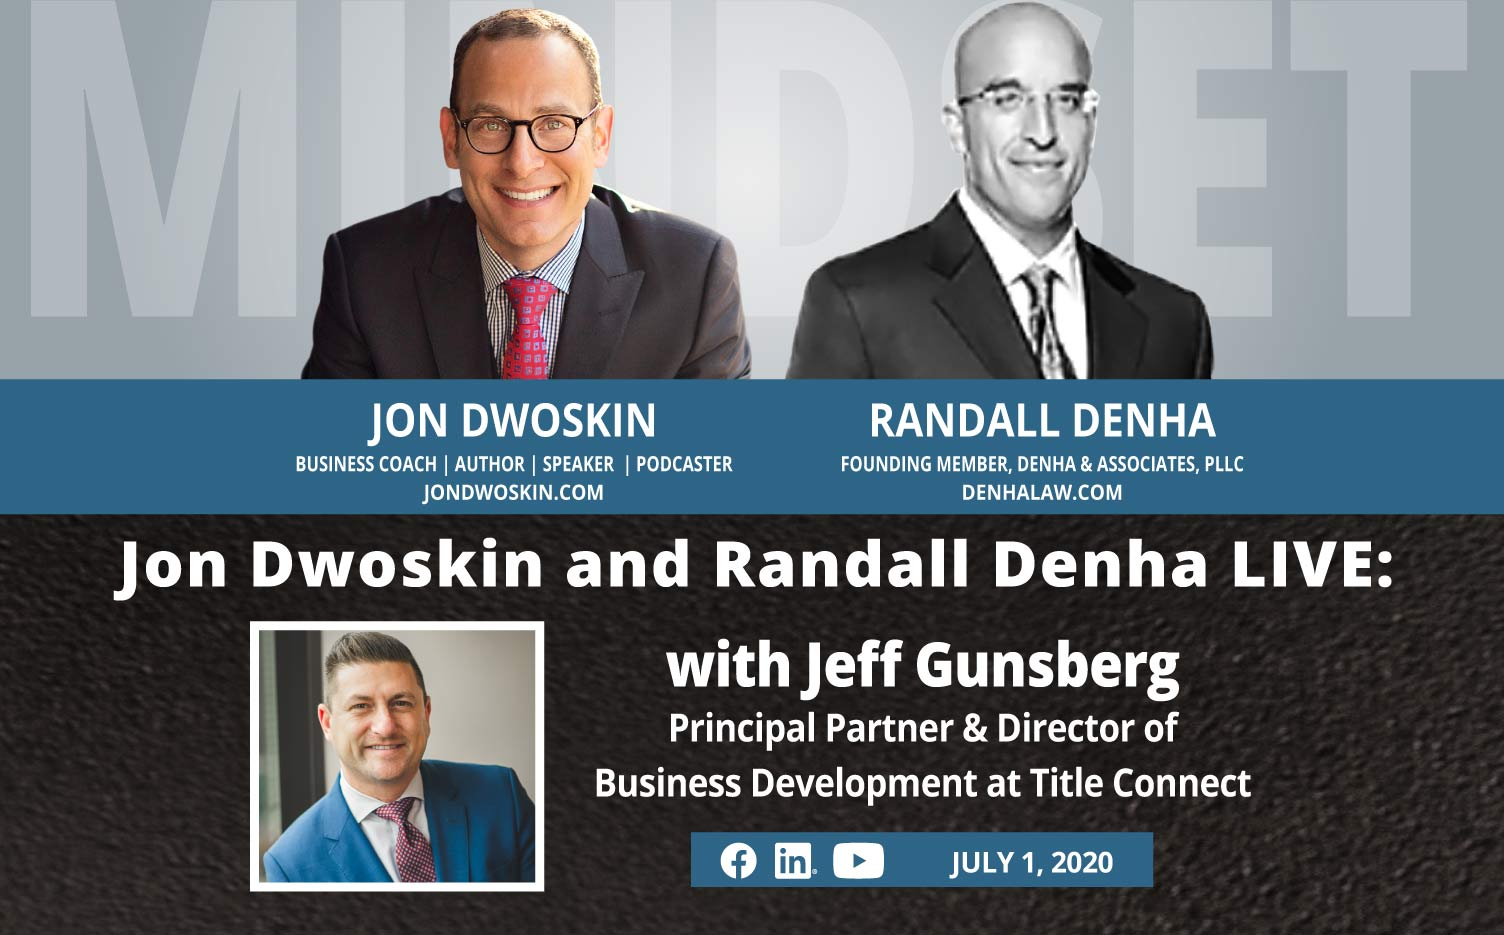 Jon Dwoskin and Randall Denha LIVE: With Jeff Gunsberg, Principal Partner & Director of Business Development at Title Connect